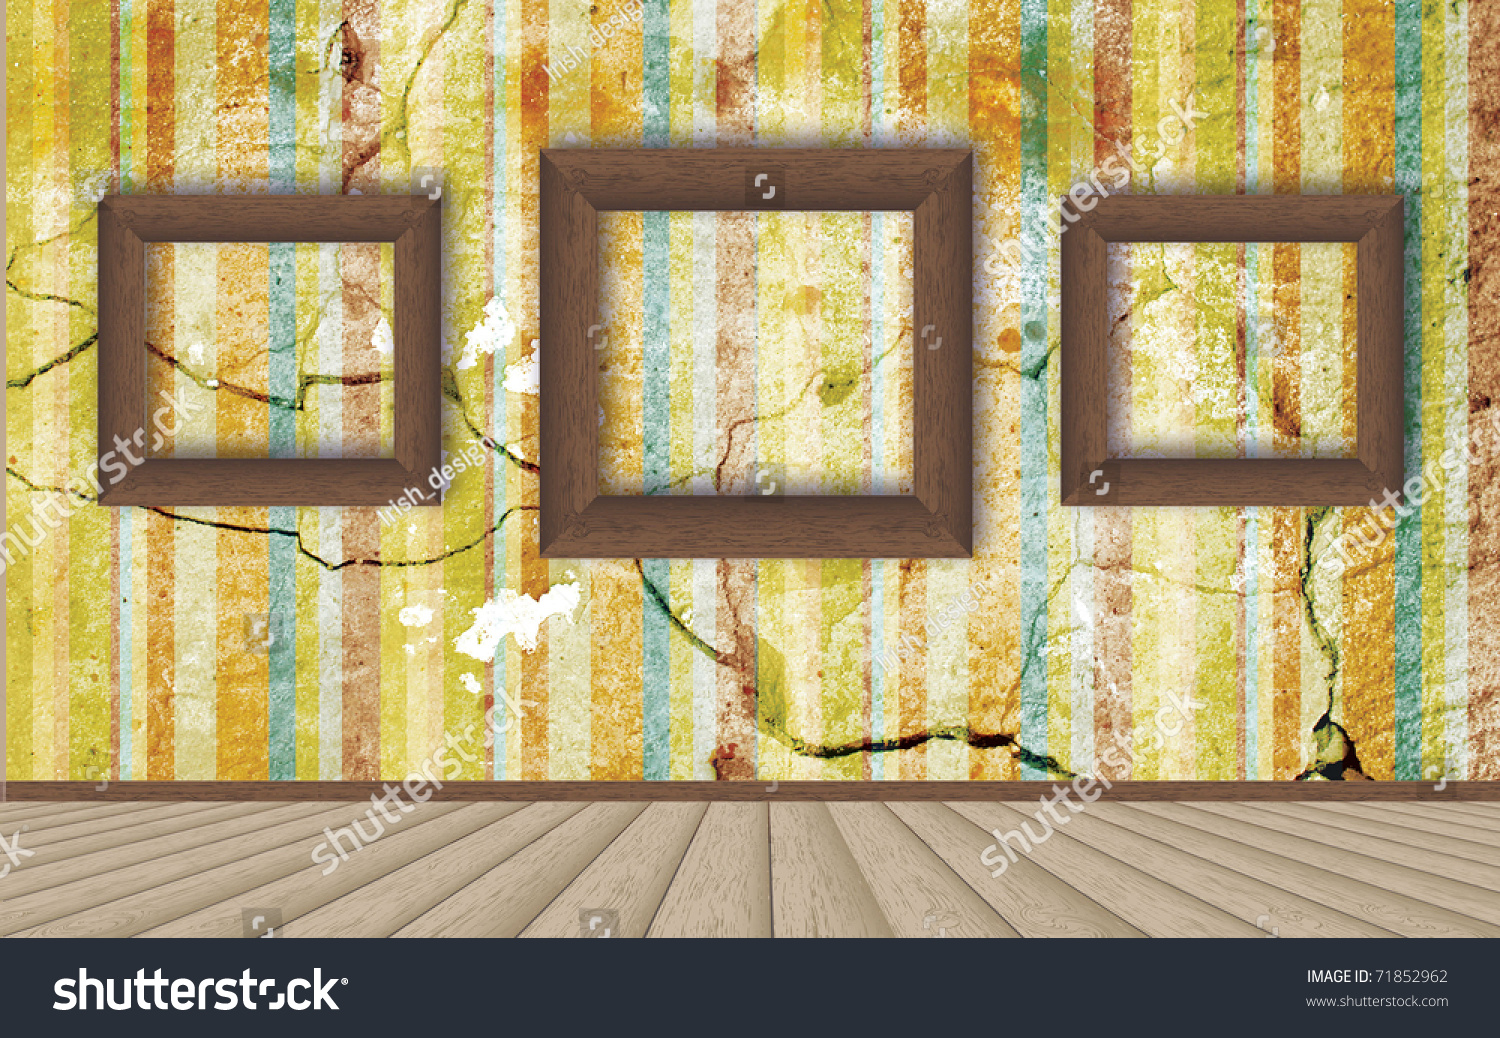 Bright Colored Walls Empty Frame On Stock Illustration 71852962 ...